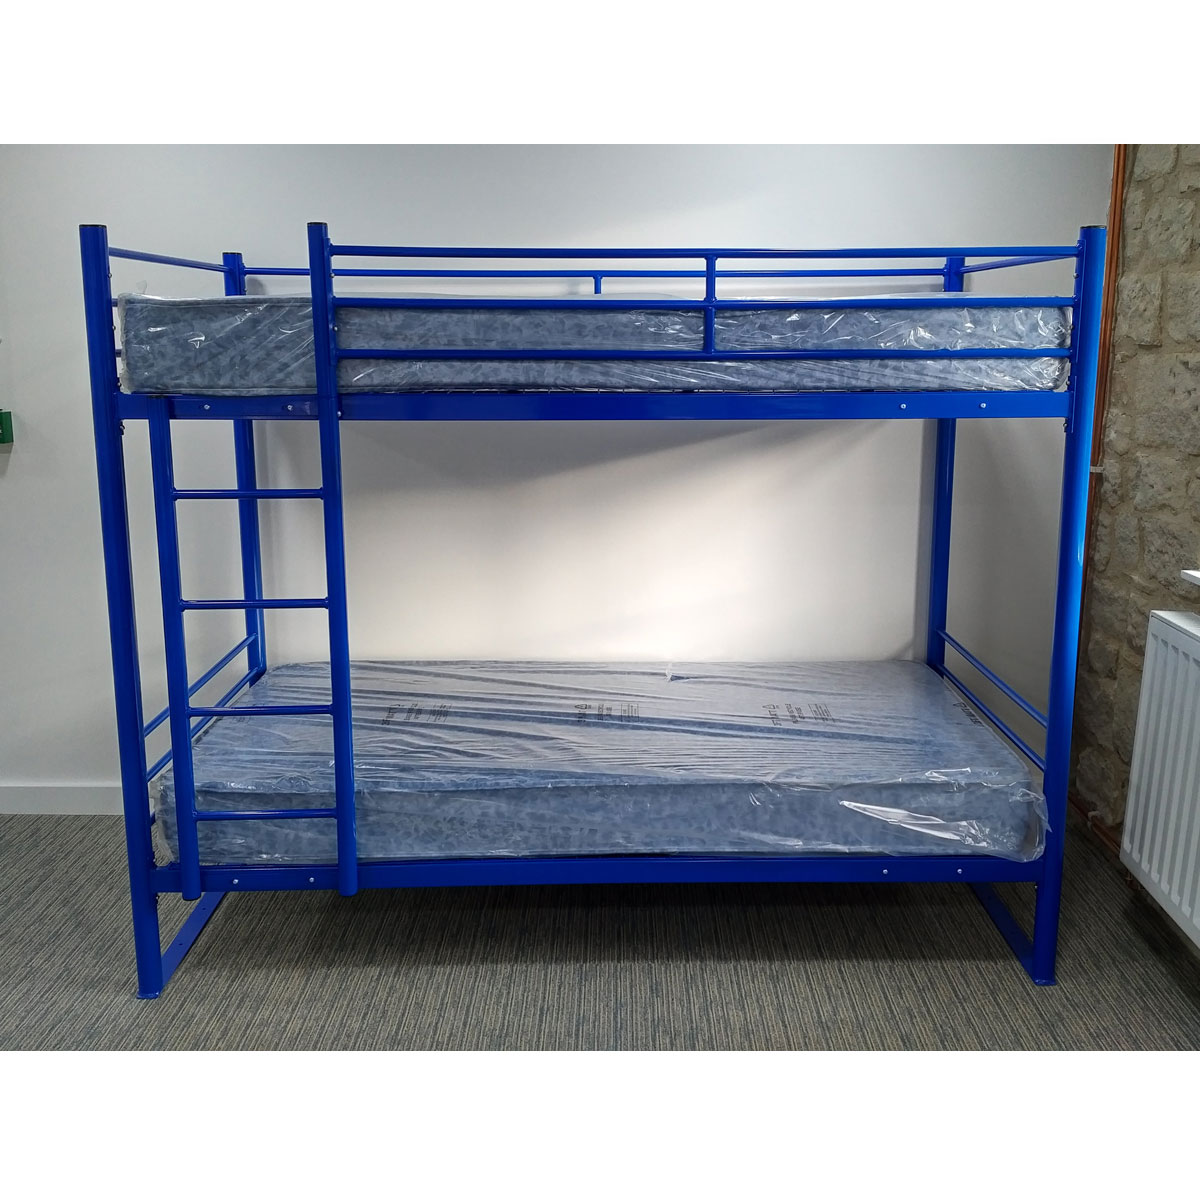 ultra heavy duty double bunk bed better bunk beds store. Black Bedroom Furniture Sets. Home Design Ideas